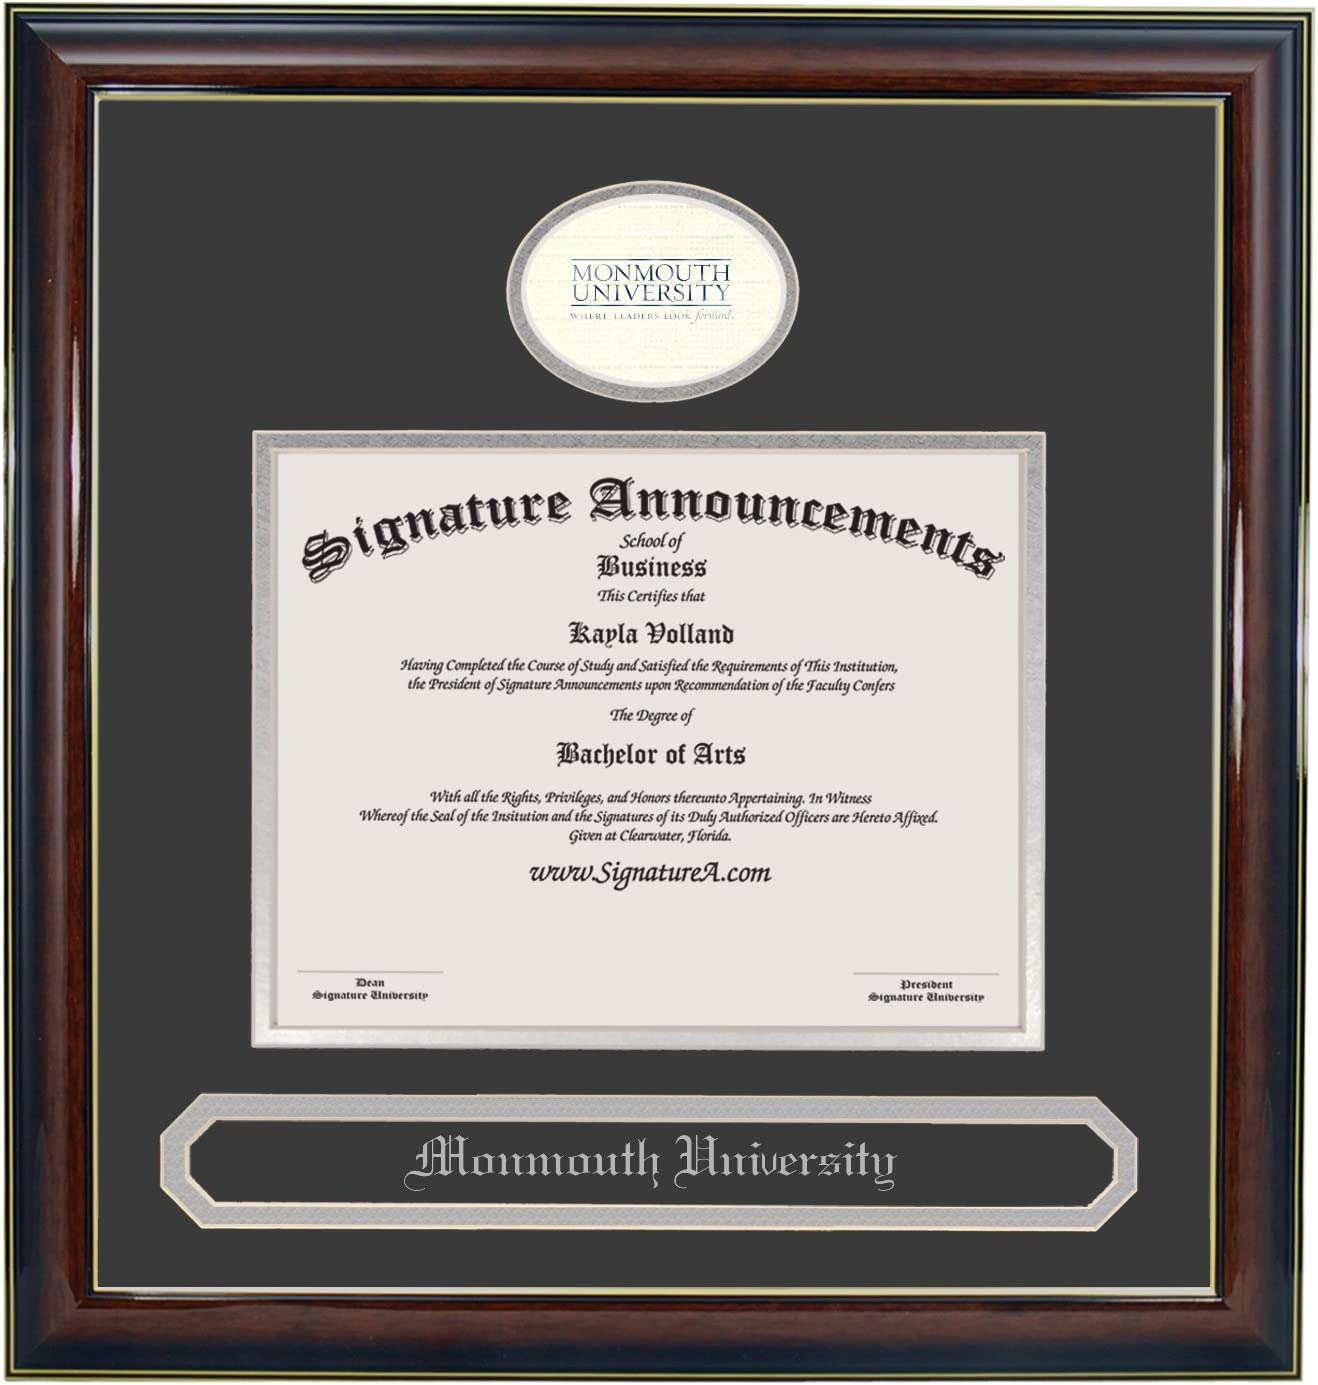 16 x 16 Signature Announcements Monmouth-University Undergraduate Gold Accent Gloss Mahogany Professional//Doctor Sculpted Foil Seal /& Name Graduation Diploma Frame